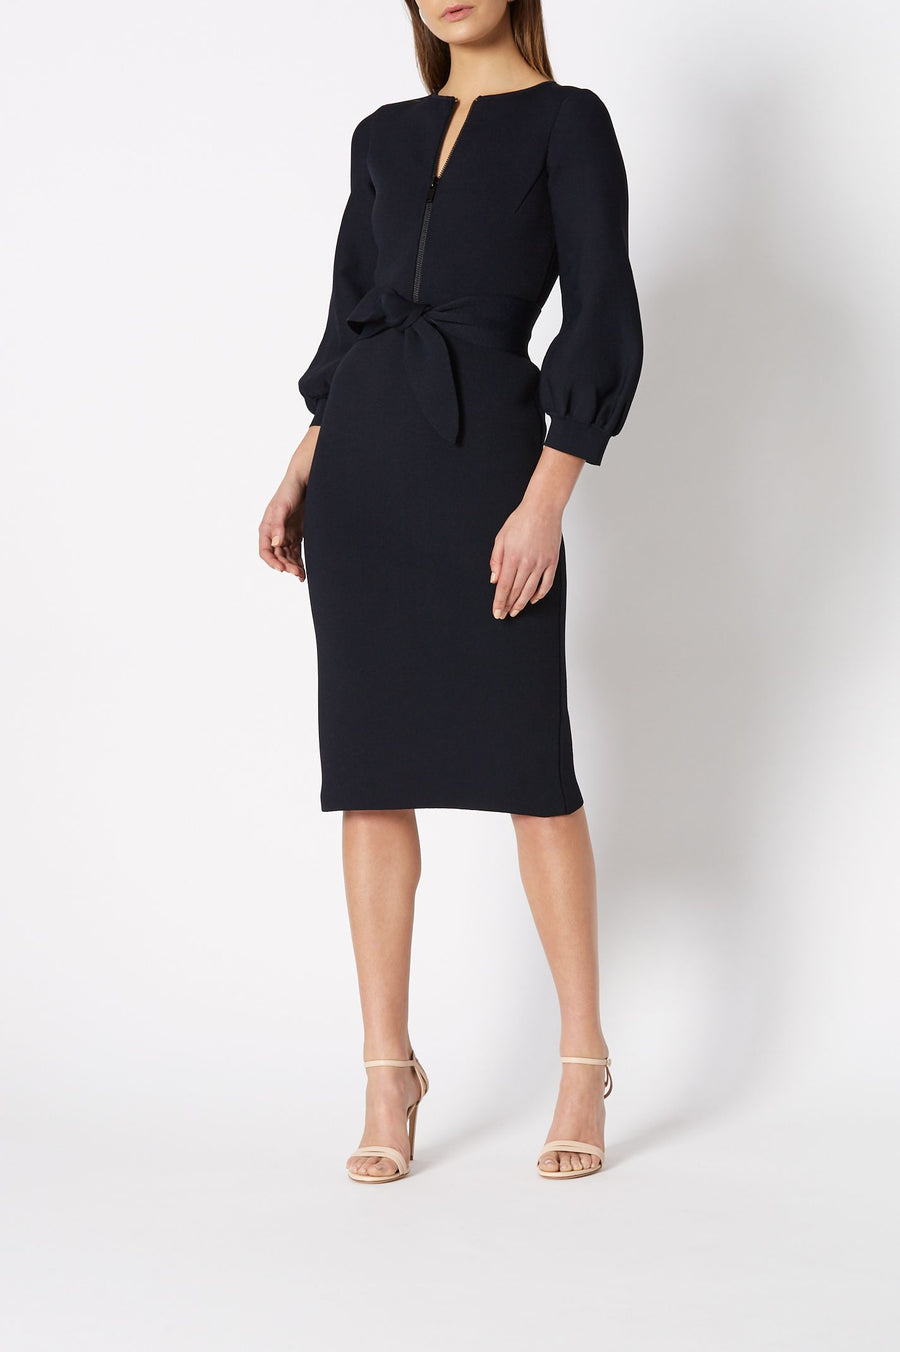 CREPE KNIT ZIP FRONT DRESS, BELL SLEEVES AND FALLS BELOW KNEE, COLOR NAVY